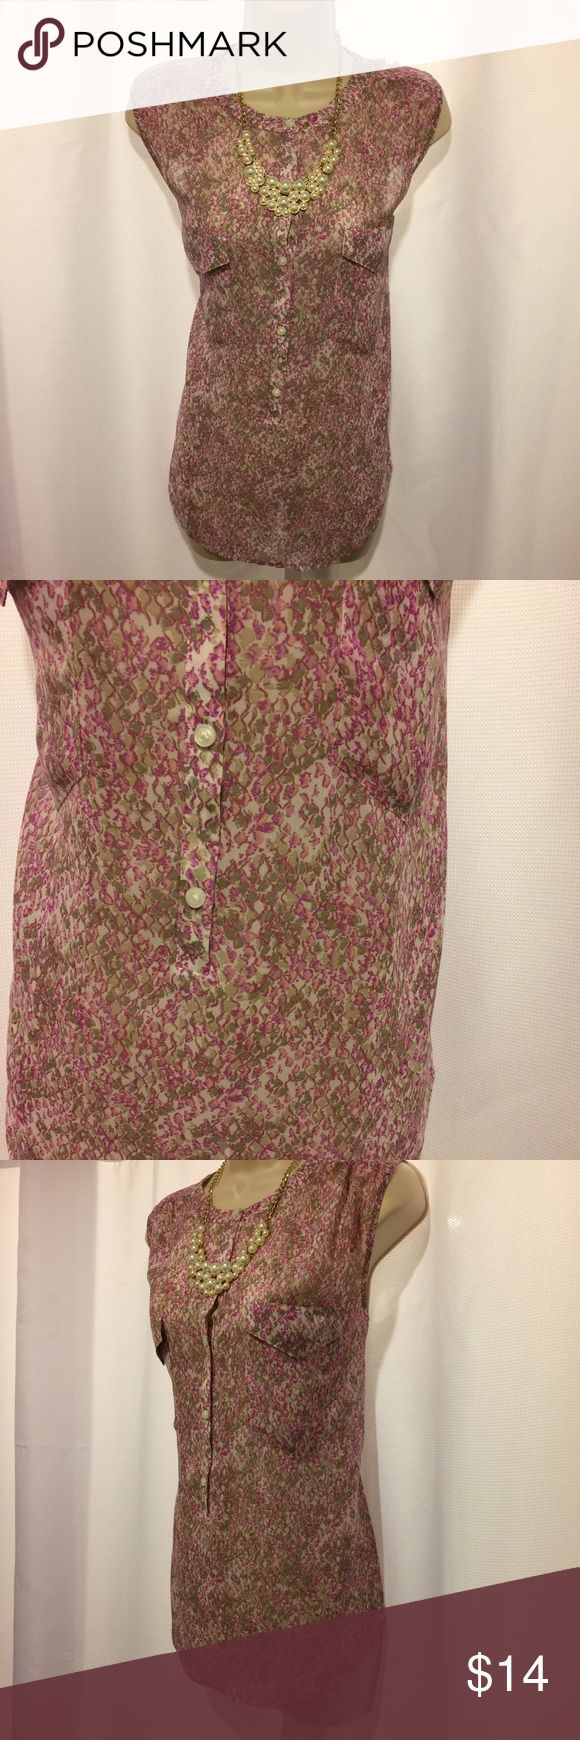 ANN TAYLOR LOFT Pink Python Print Shell Ann Taylor Loft sleeveless top in dark pink python print.  Slightly sheer.  Pockets in front.  Buttons part way down the shirt.  27 inches from shoulder to bottom hem.  Polyester.  Super cute and in excellent condition! LOFT Tops Blouses